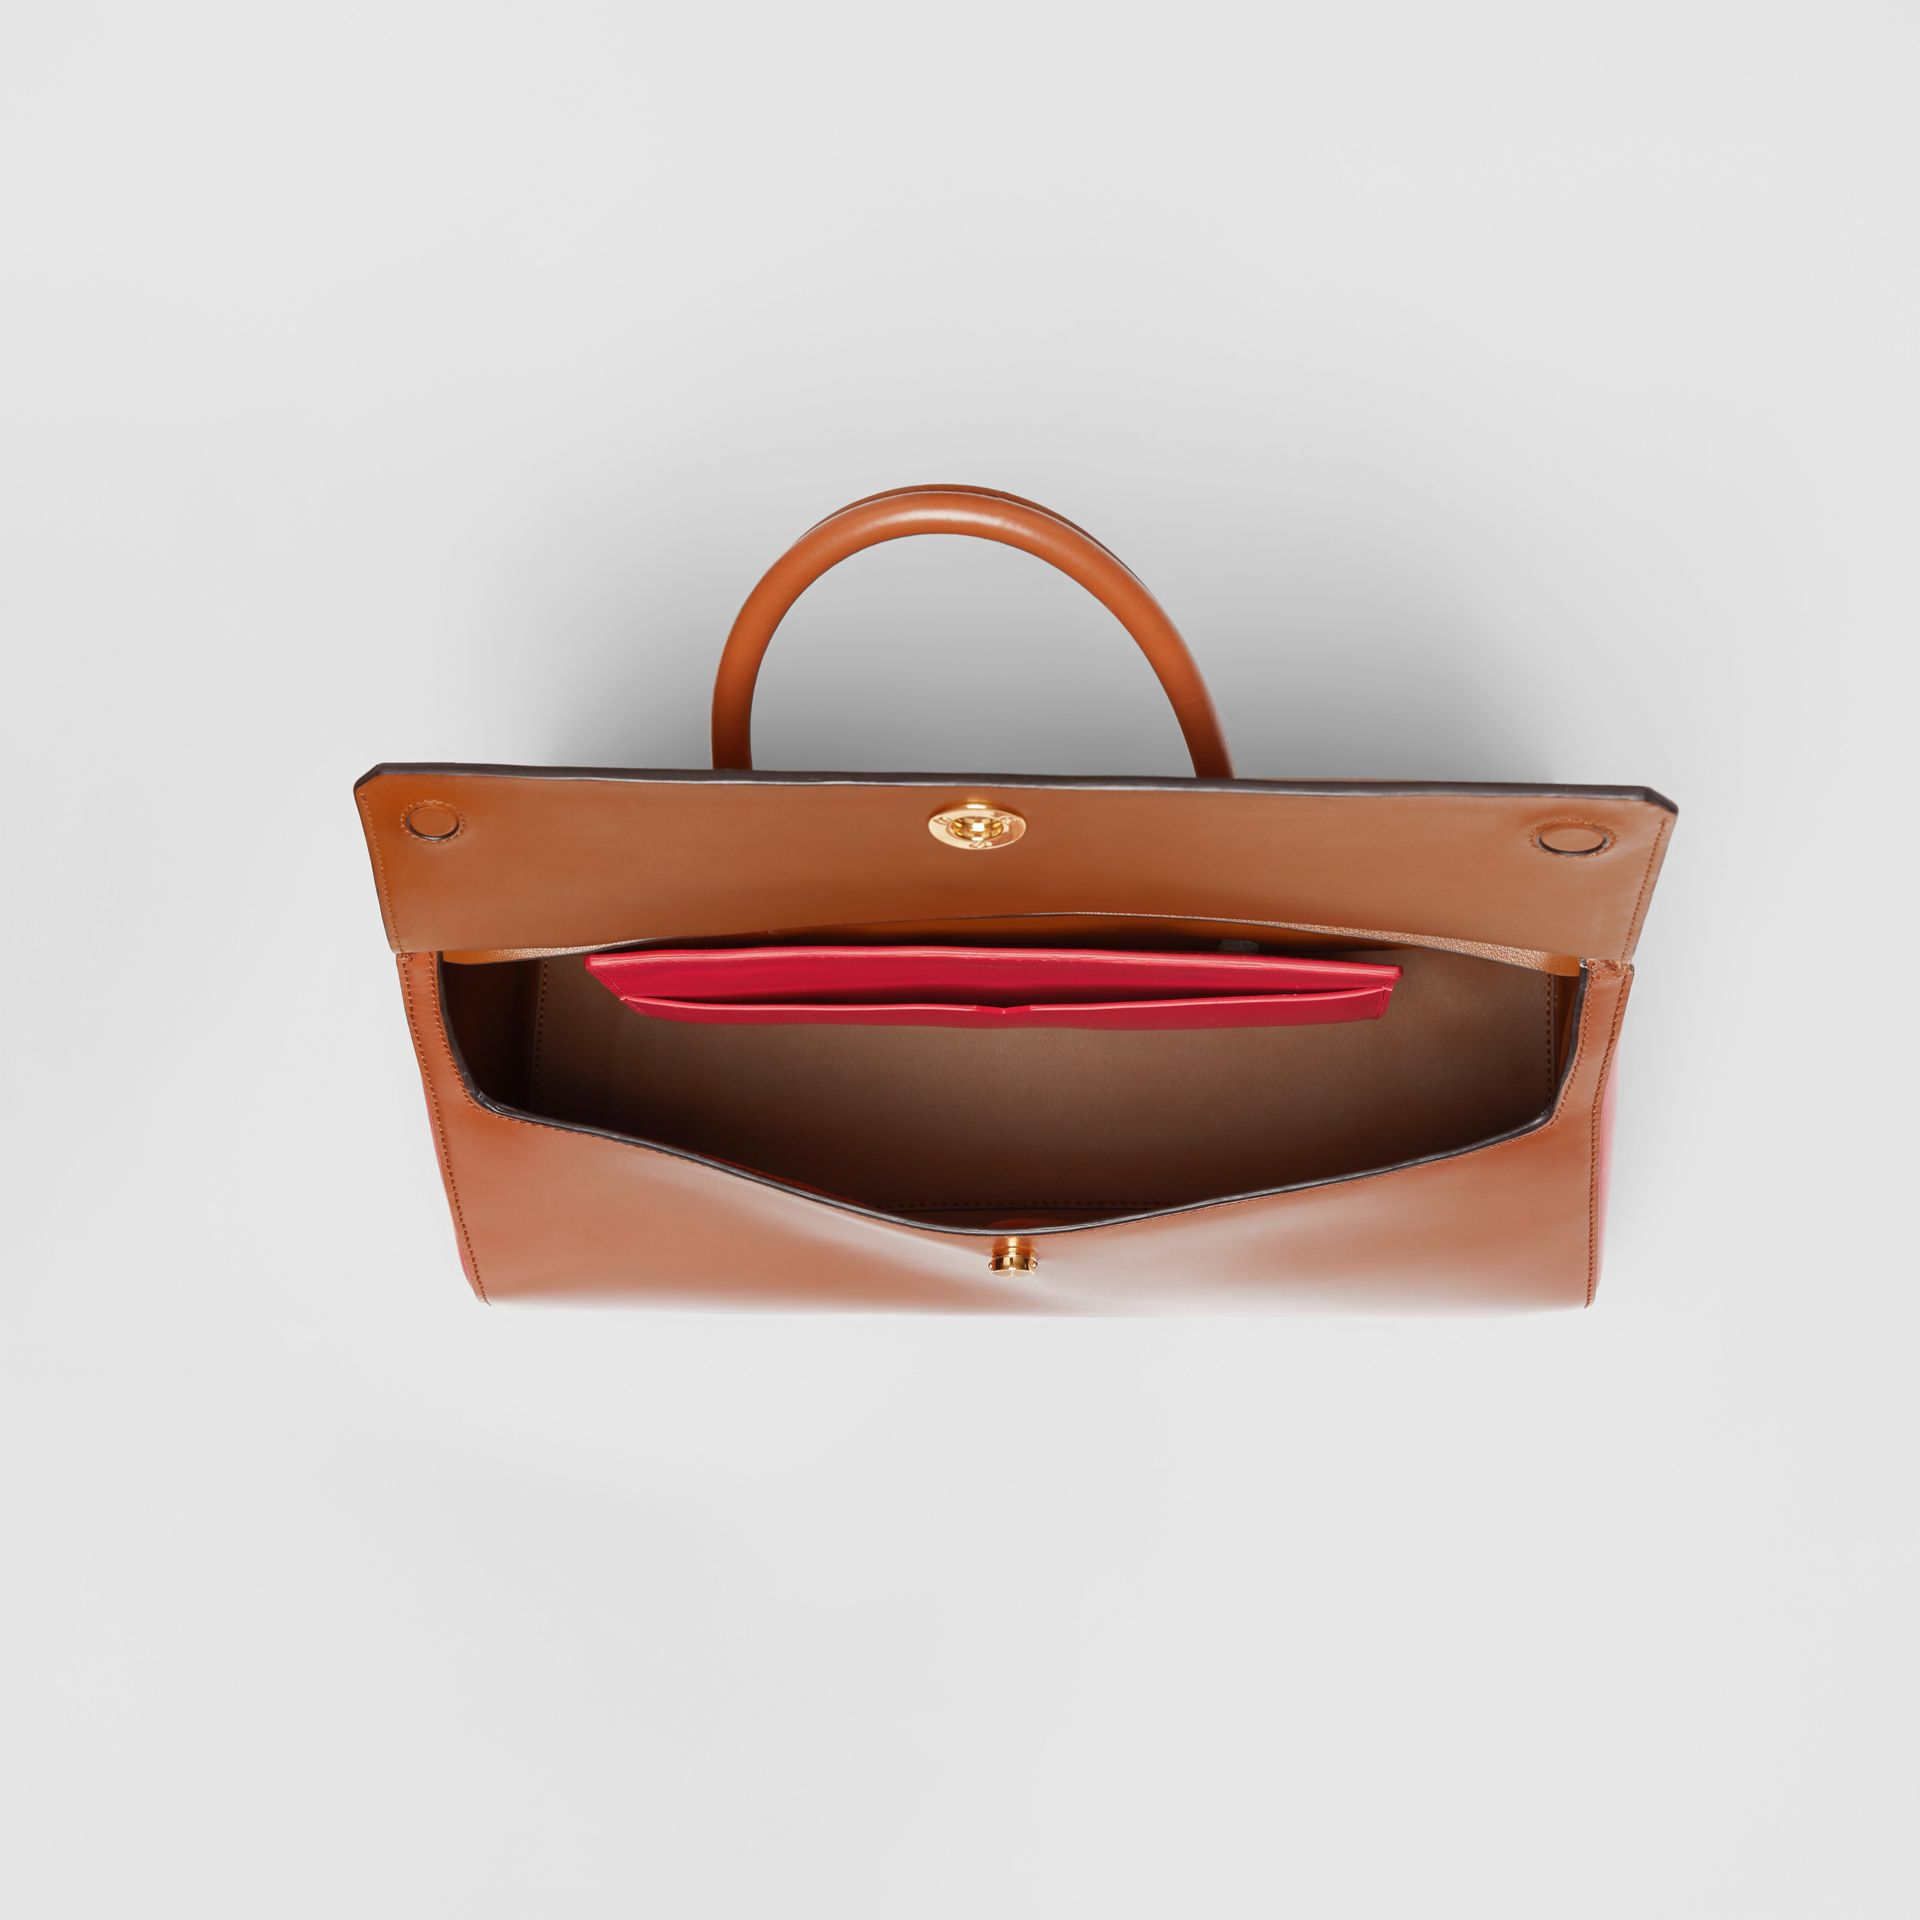 Medium Leather Elizabeth Bag in Malt Brown - Women | Burberry Australia - gallery image 3